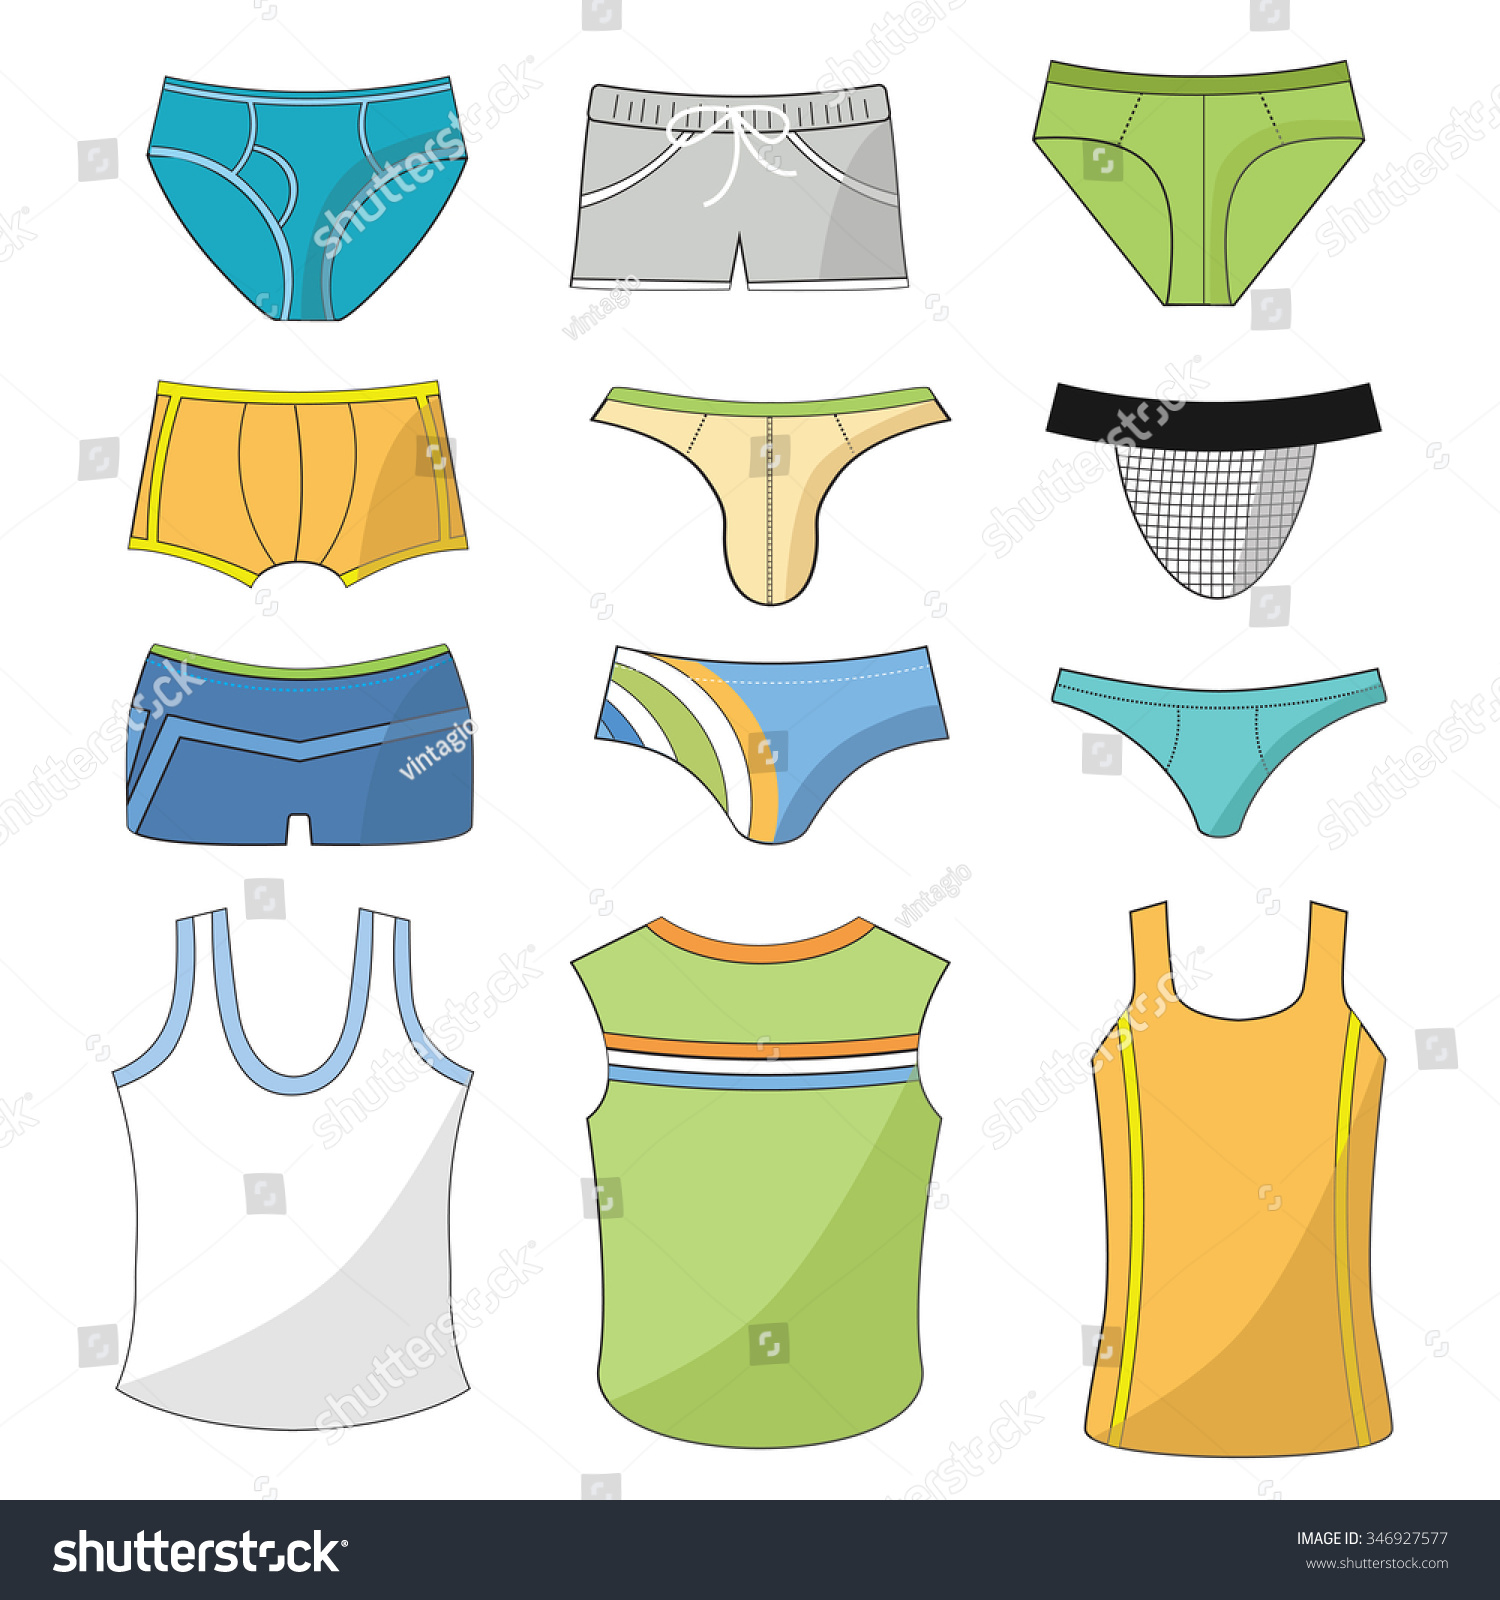 Clipart underclothes png royalty free stock Underwear clipart singlet - 105 transparent clip arts, images and ... png royalty free stock